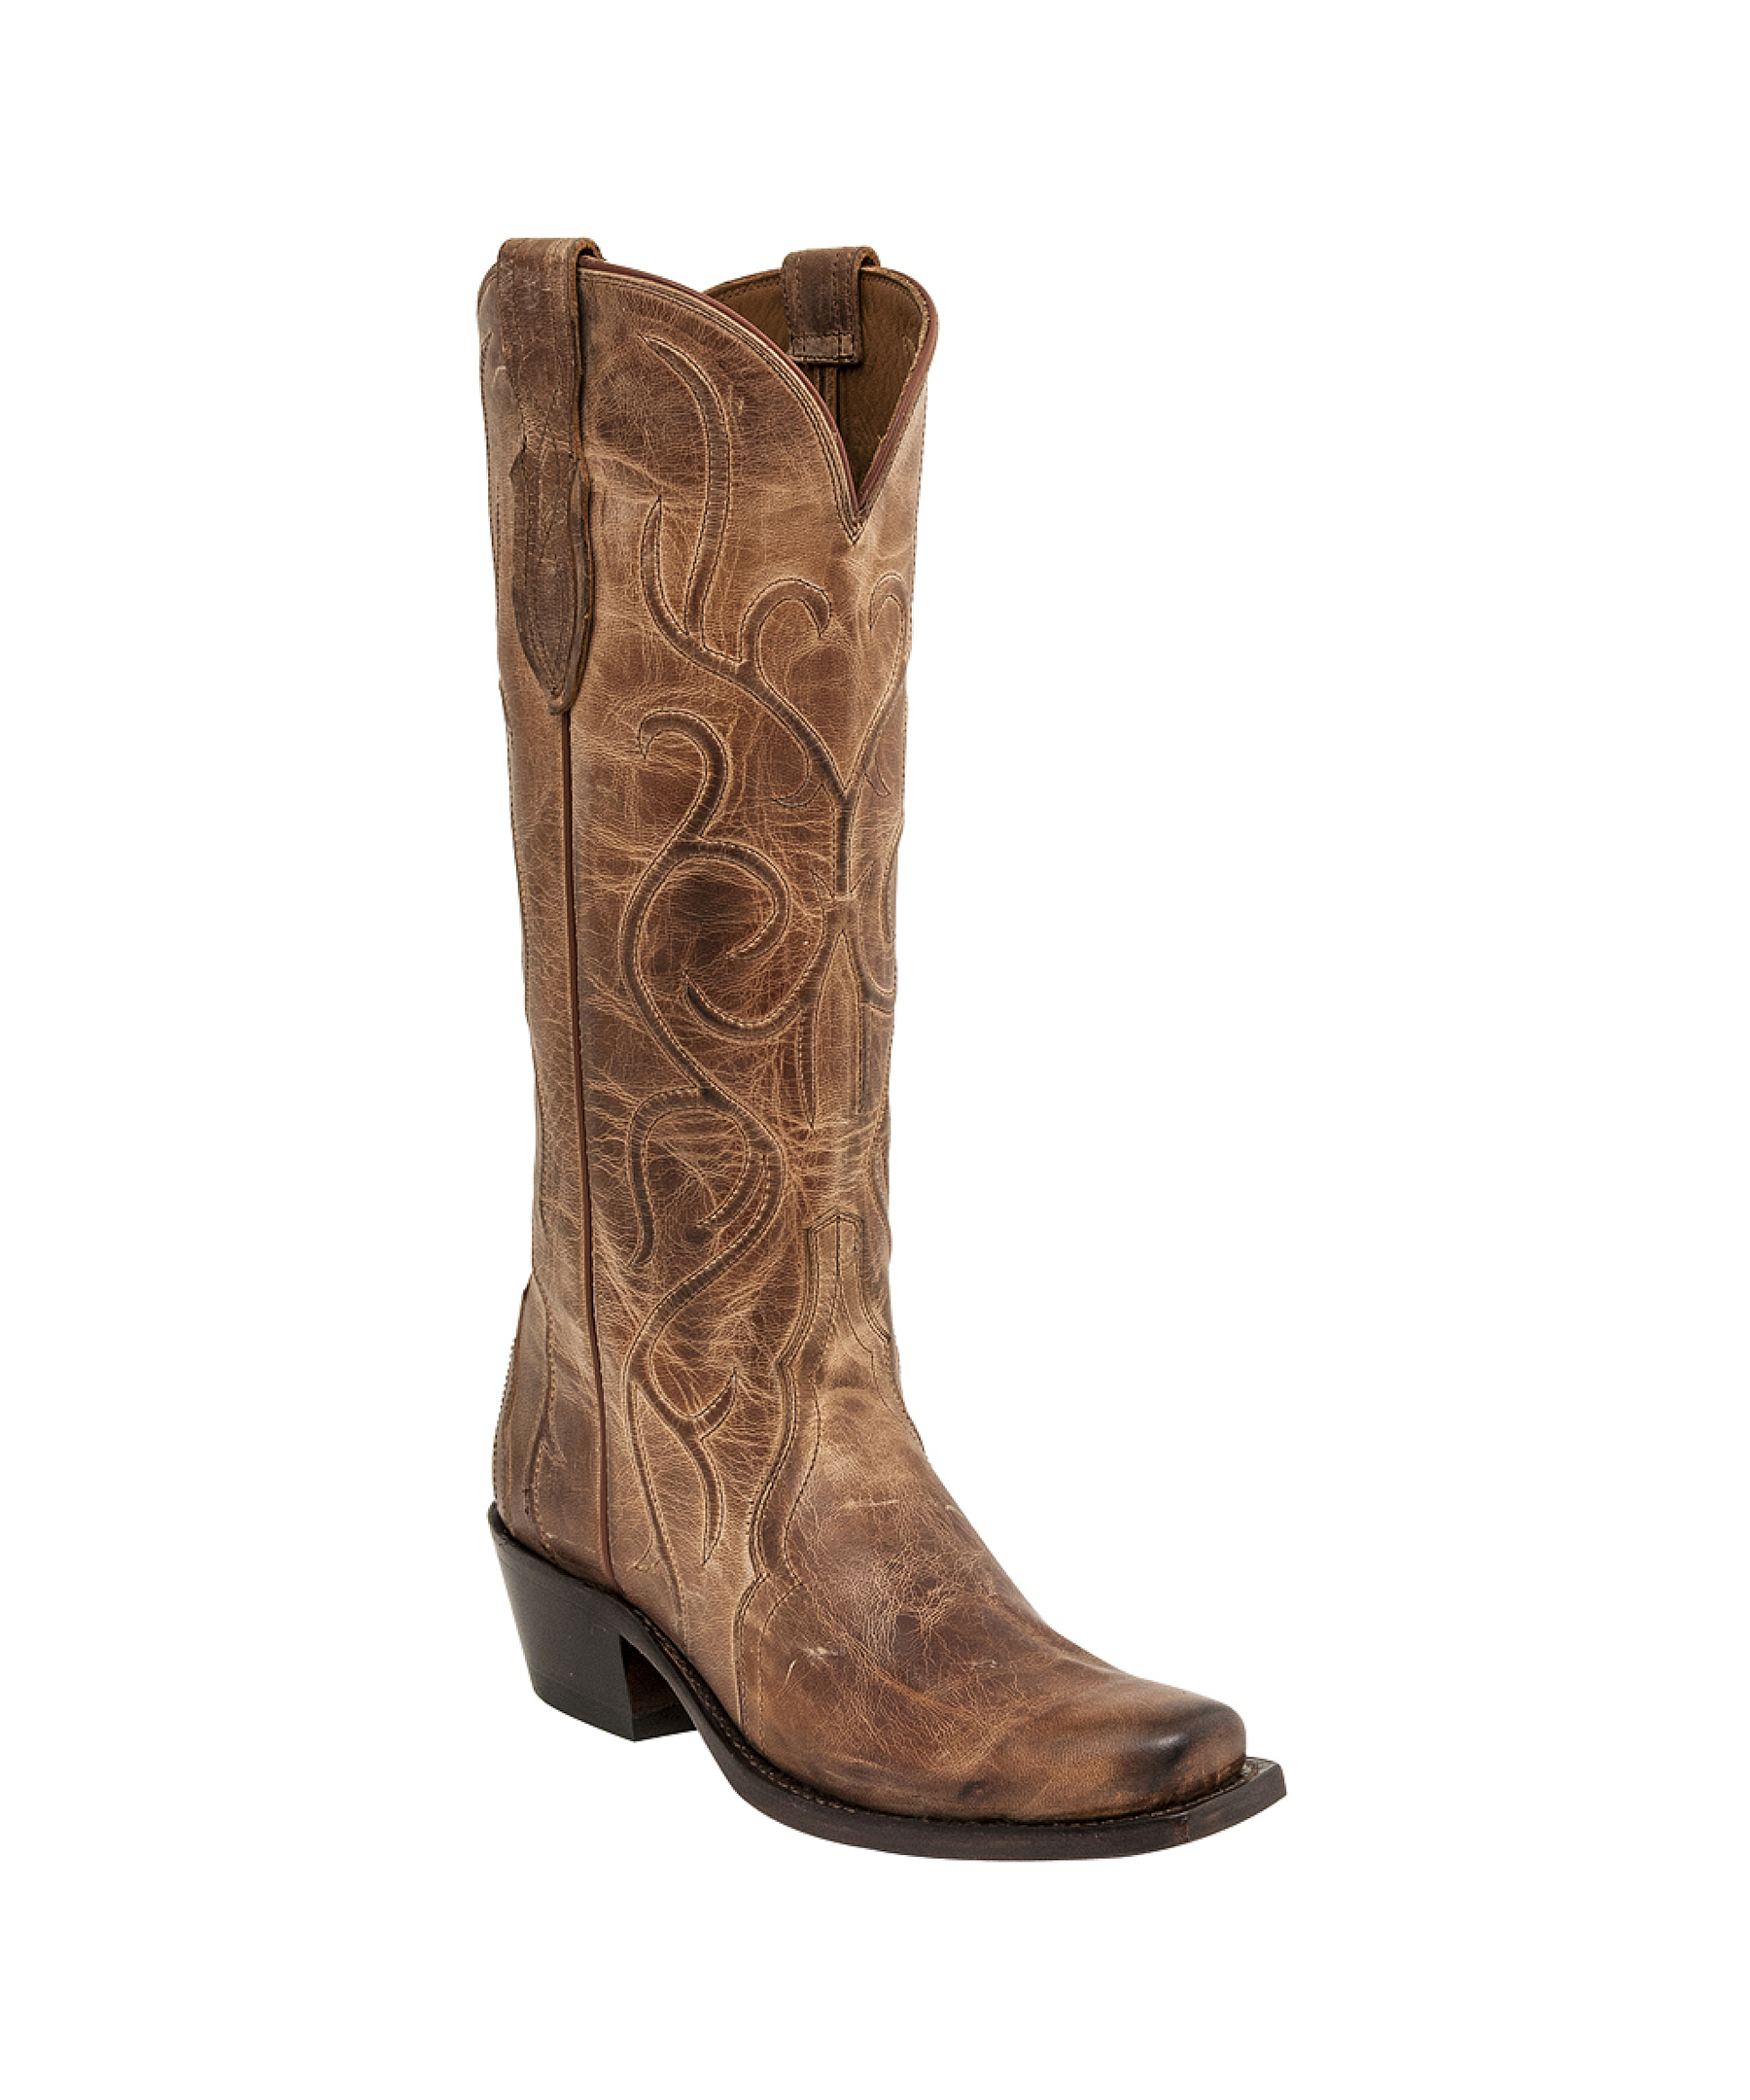 Innovative Lucchese Women39s Tan Burnished Jersey Calf S5 Toe Boots